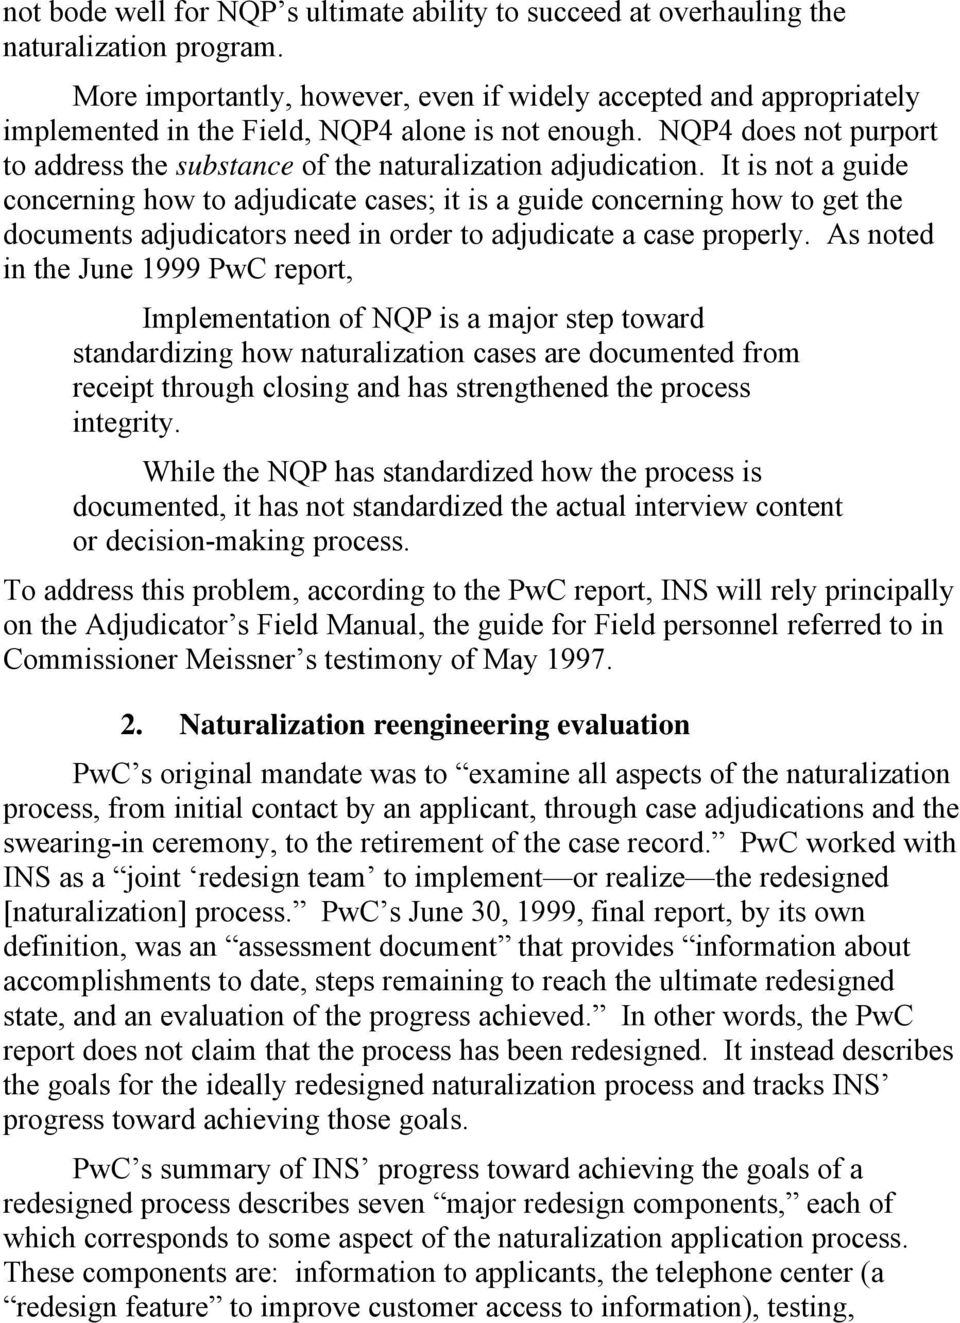 NQP4 does not purport to address the substance of the naturalization adjudication.